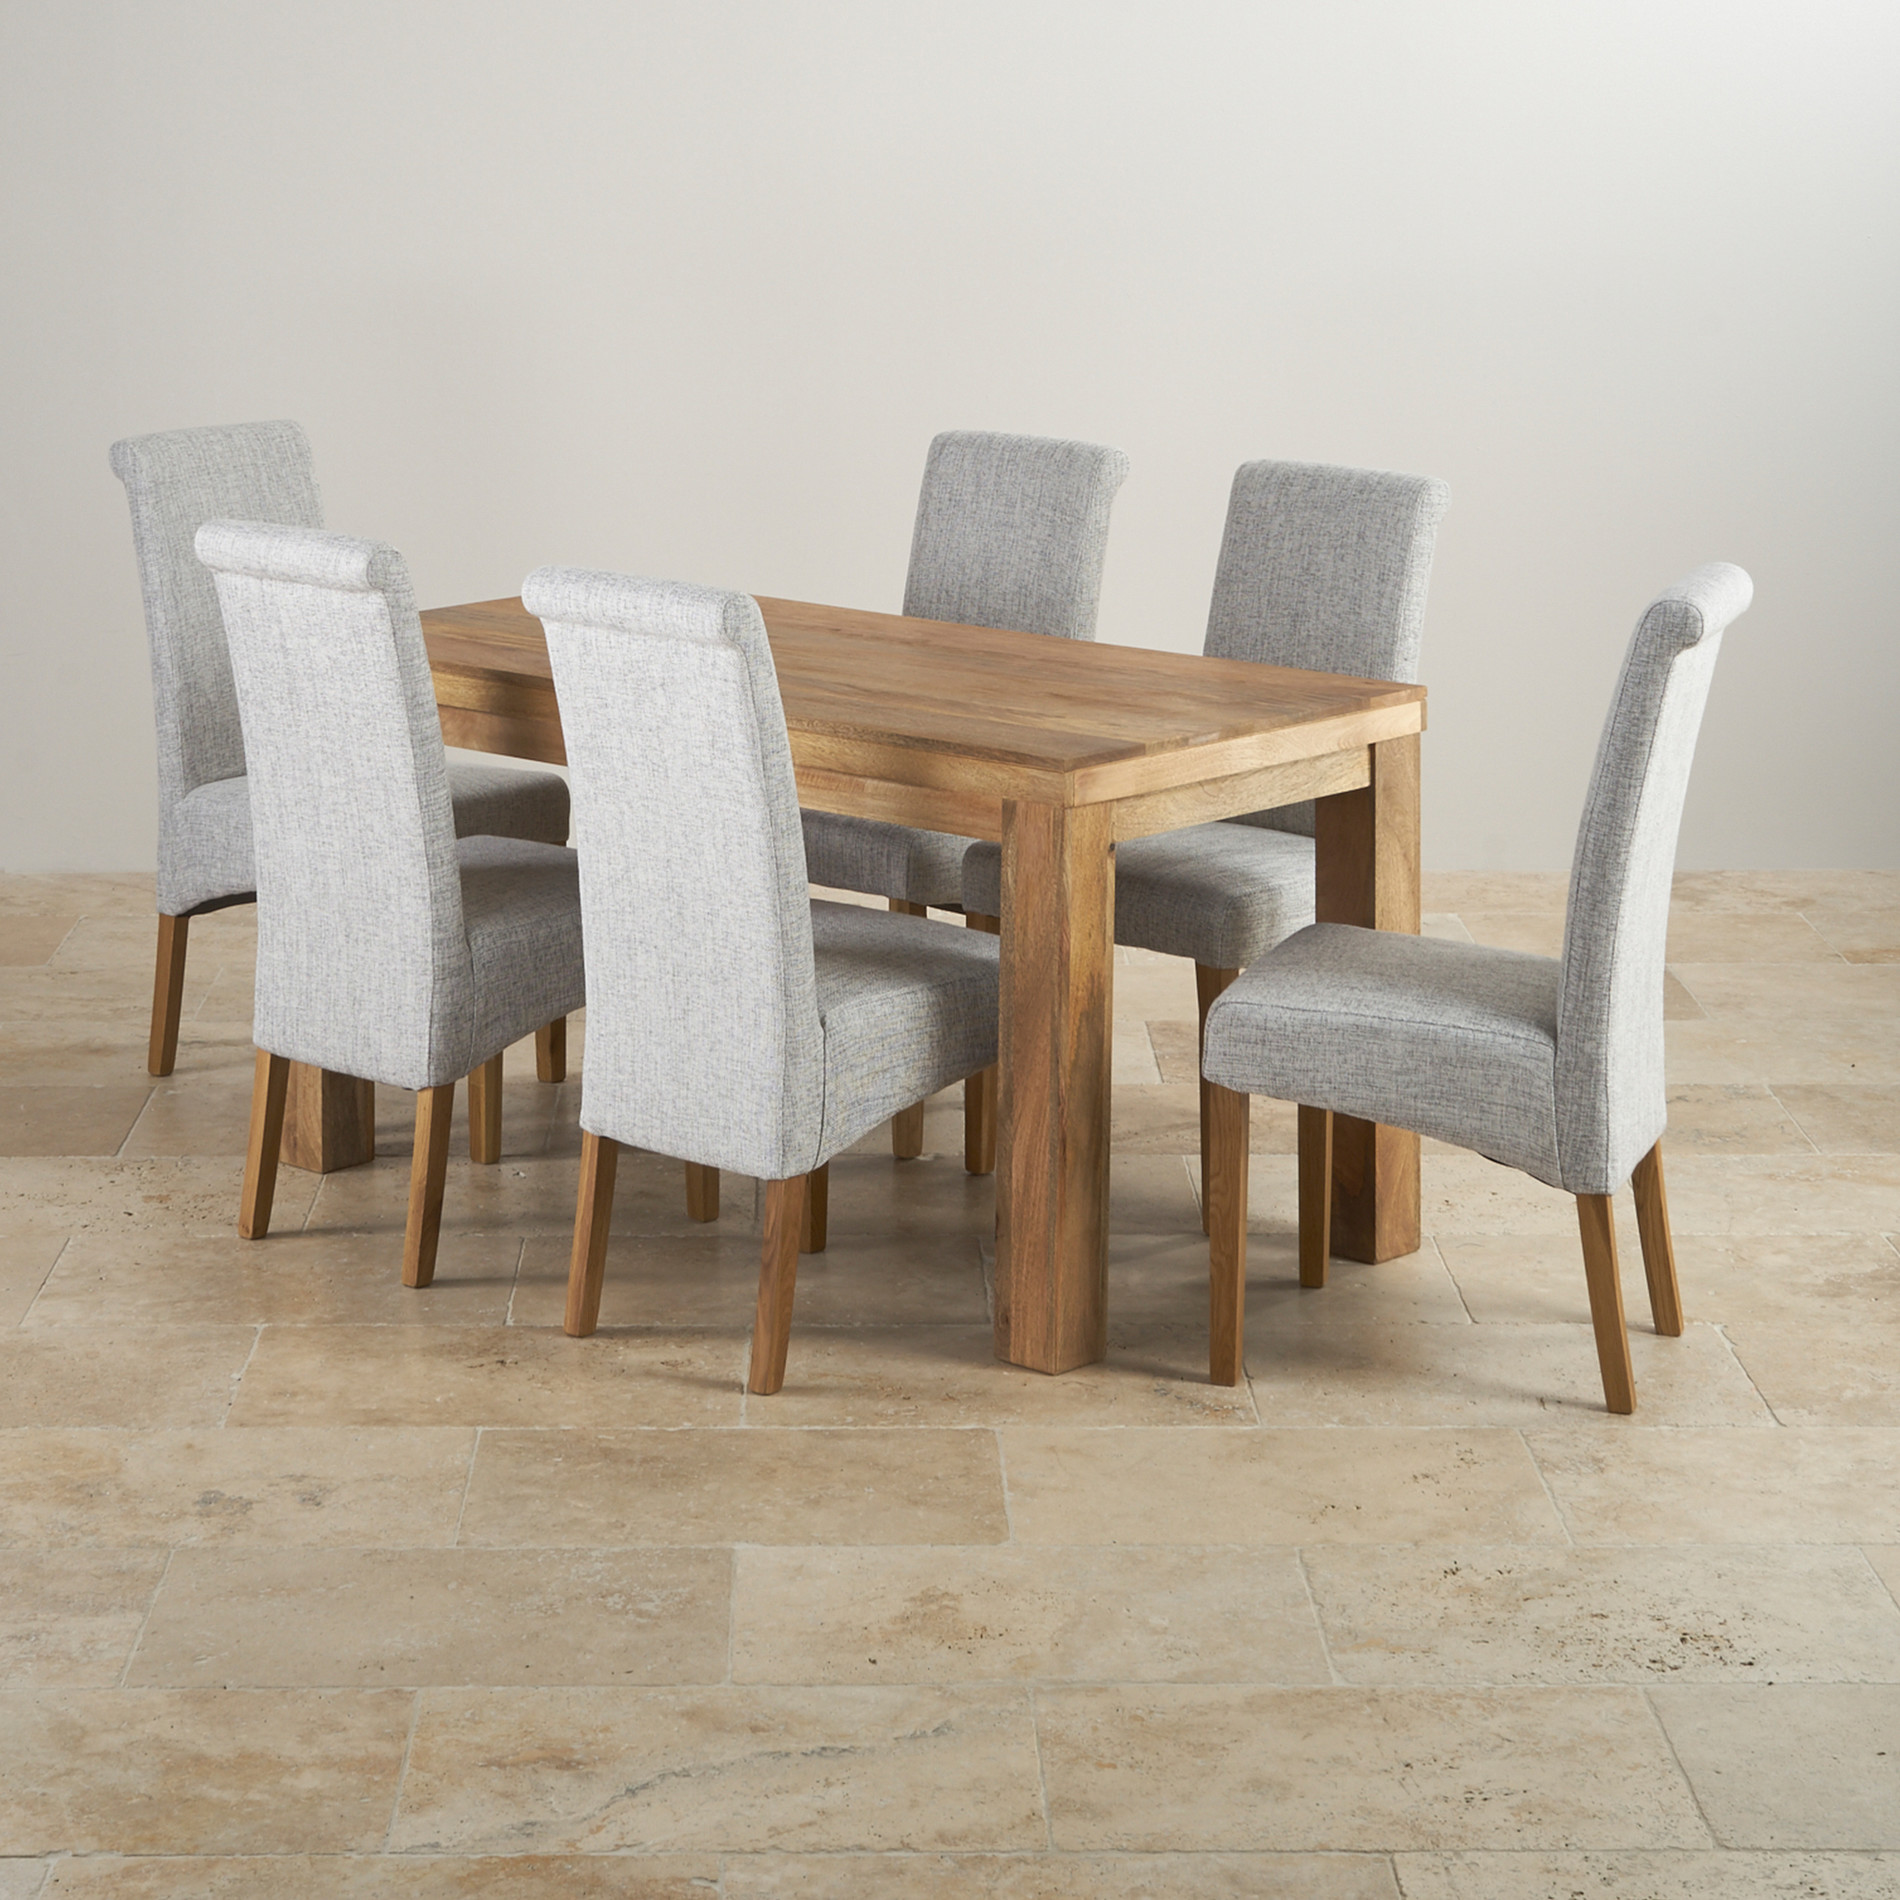 Mantis light mango dining set 5ft table with 6 chairs - Grey fabric dining room chairs designs ...